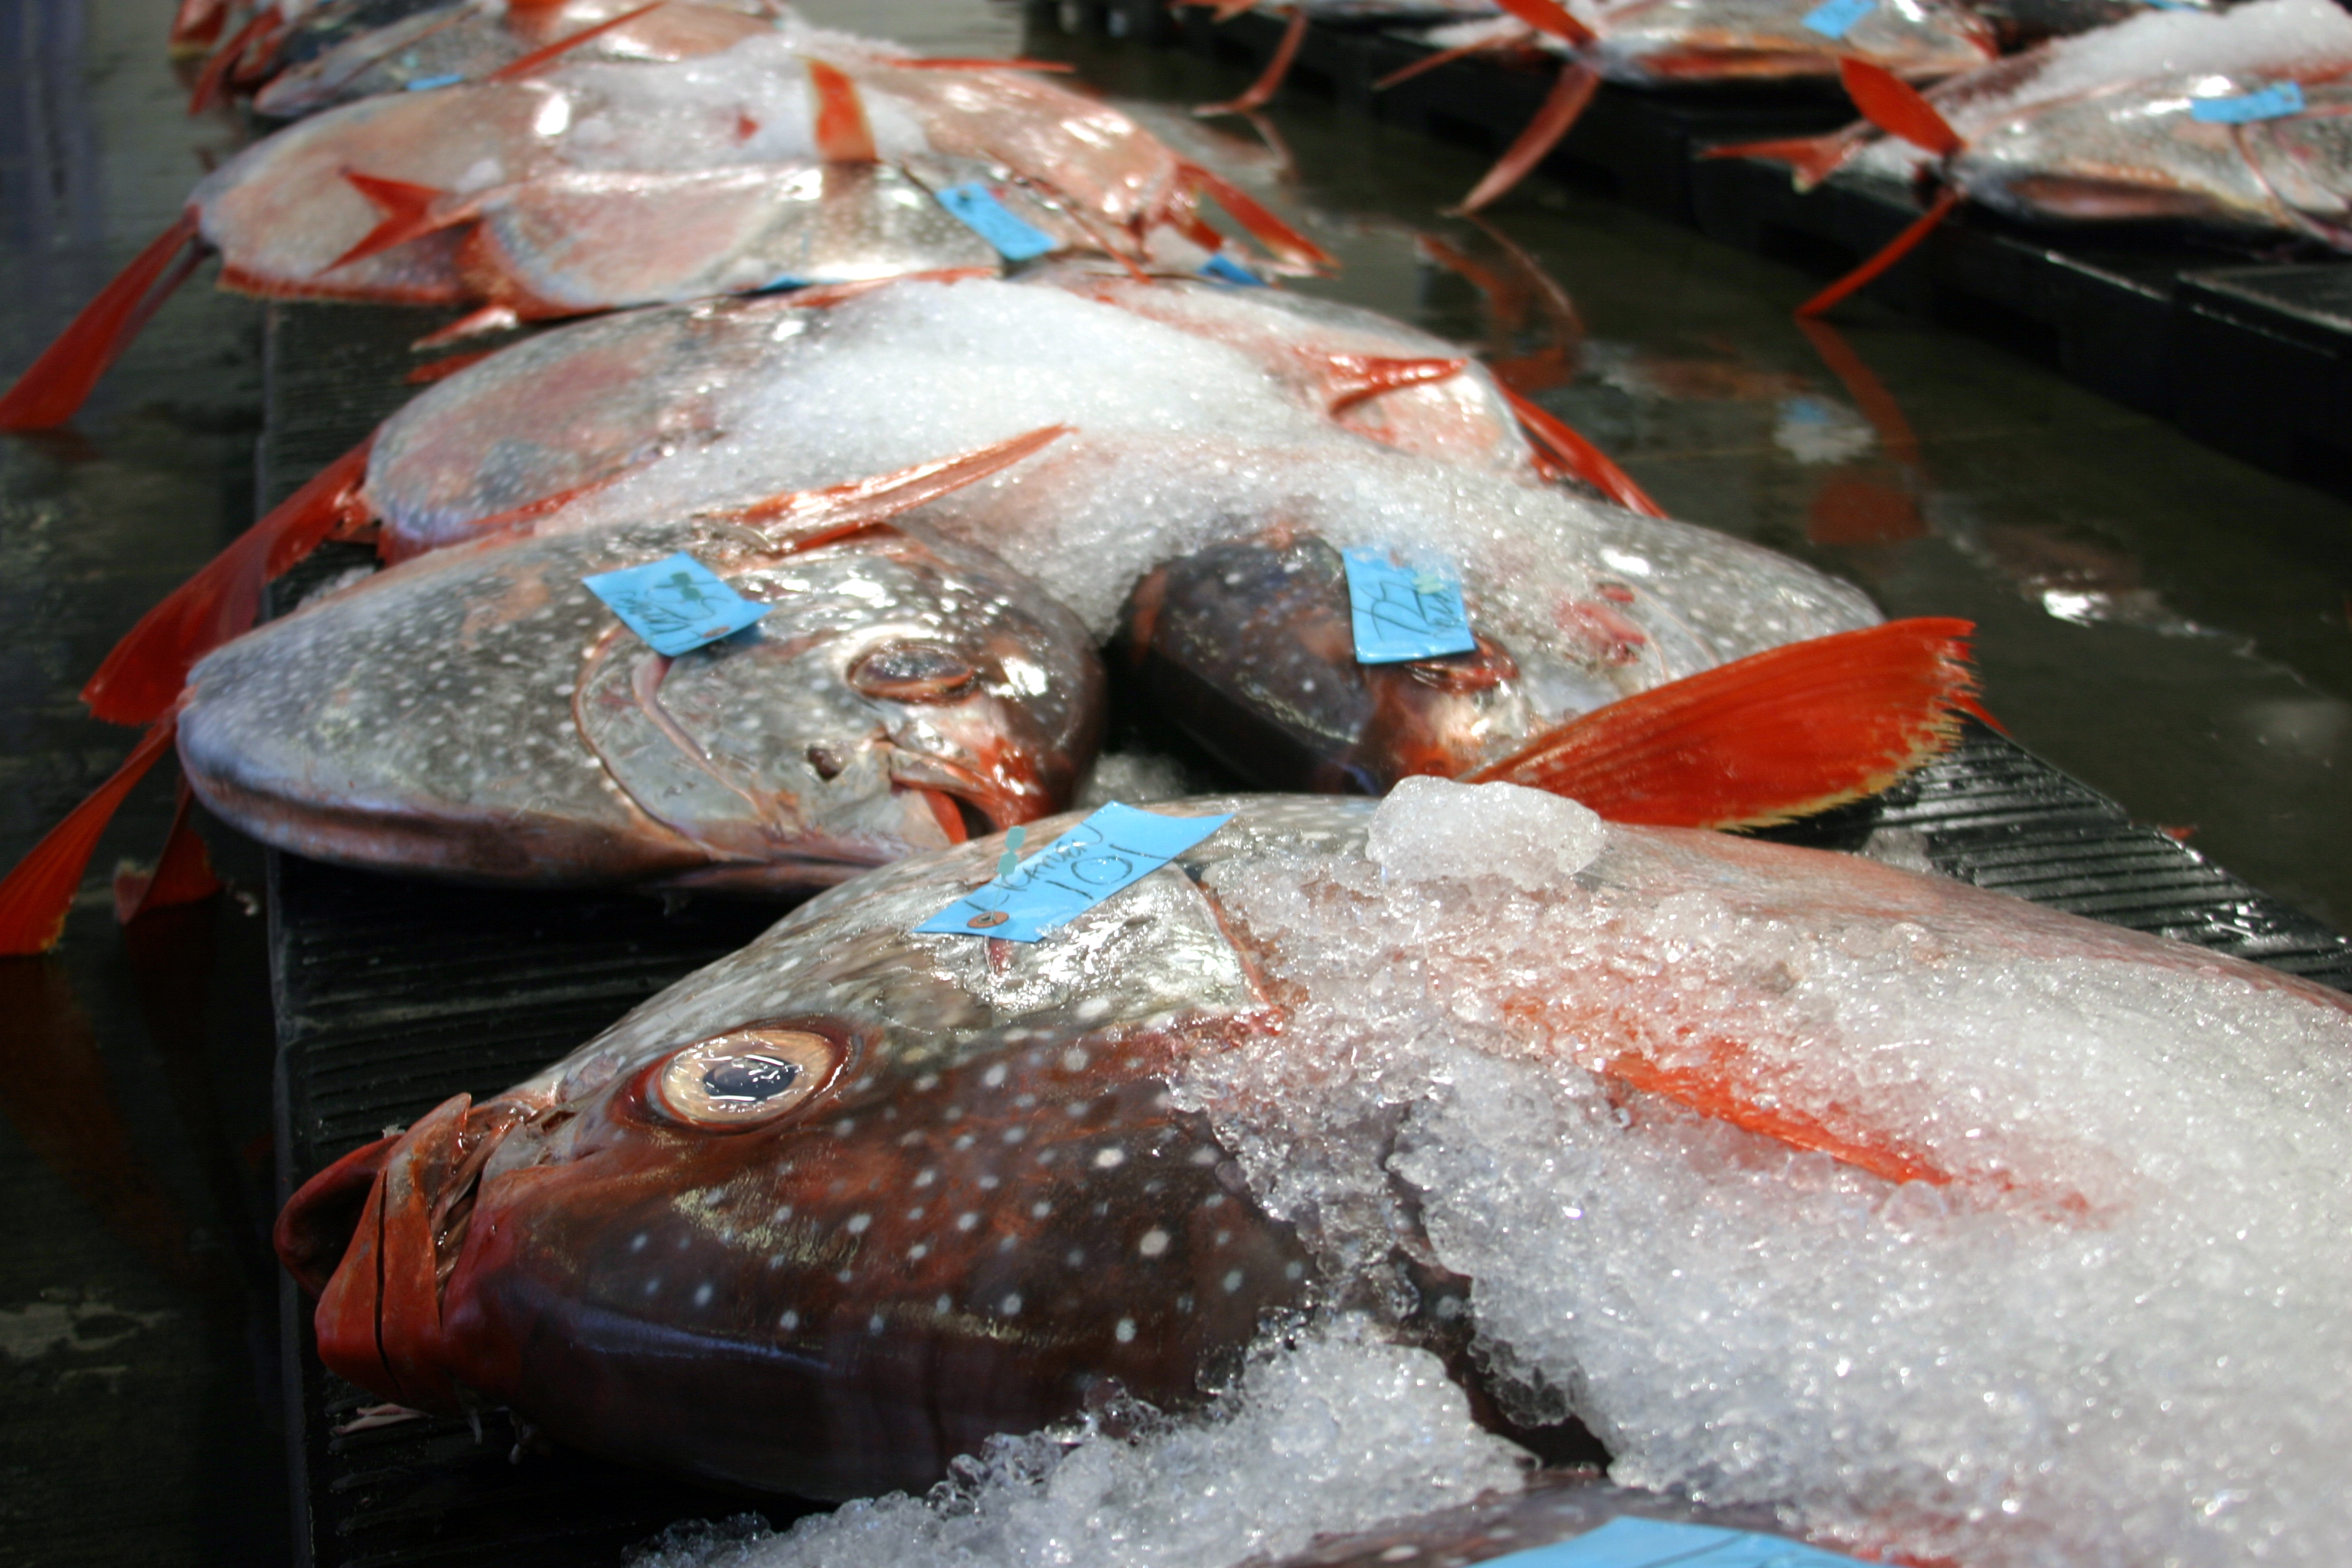 Opah, also called moonfish, at a fish auction in Hawaii. Opah were one of nine fish species analyzed in a new study that looked at how mercury gets into open-ocean fish and why the levels vary with depth. Image credit: C. Anela Choy